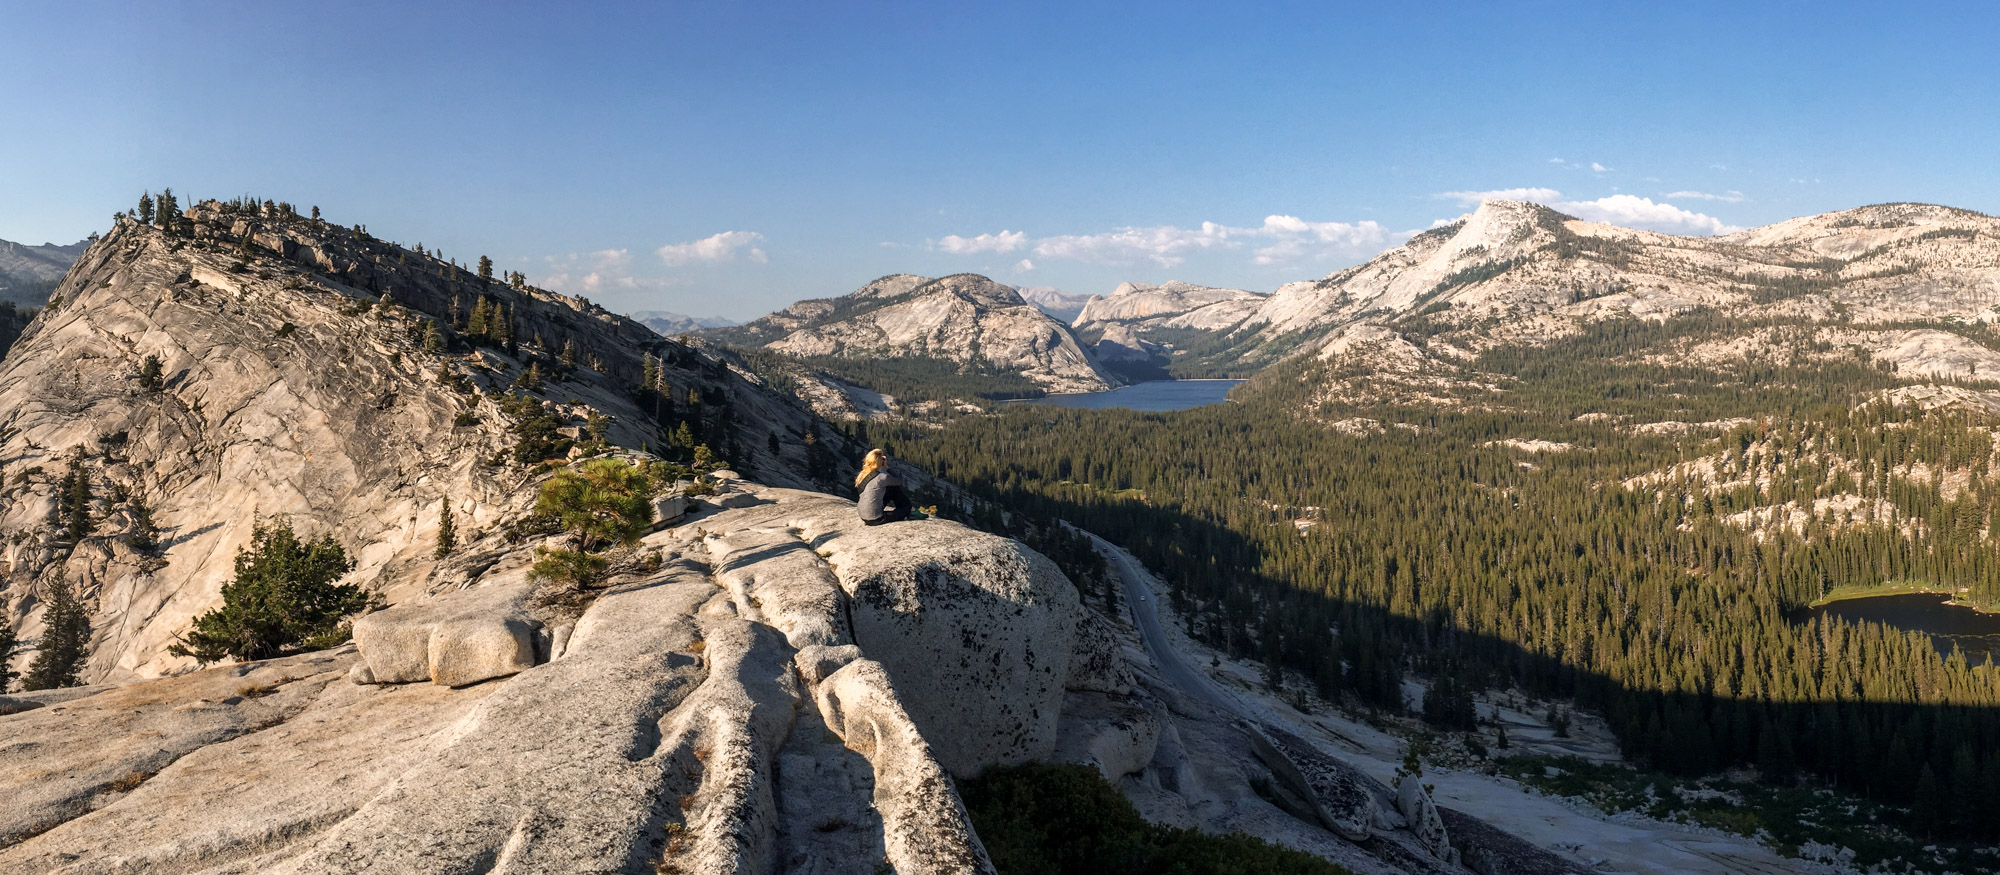 Looking out over Tuolumne Meadows